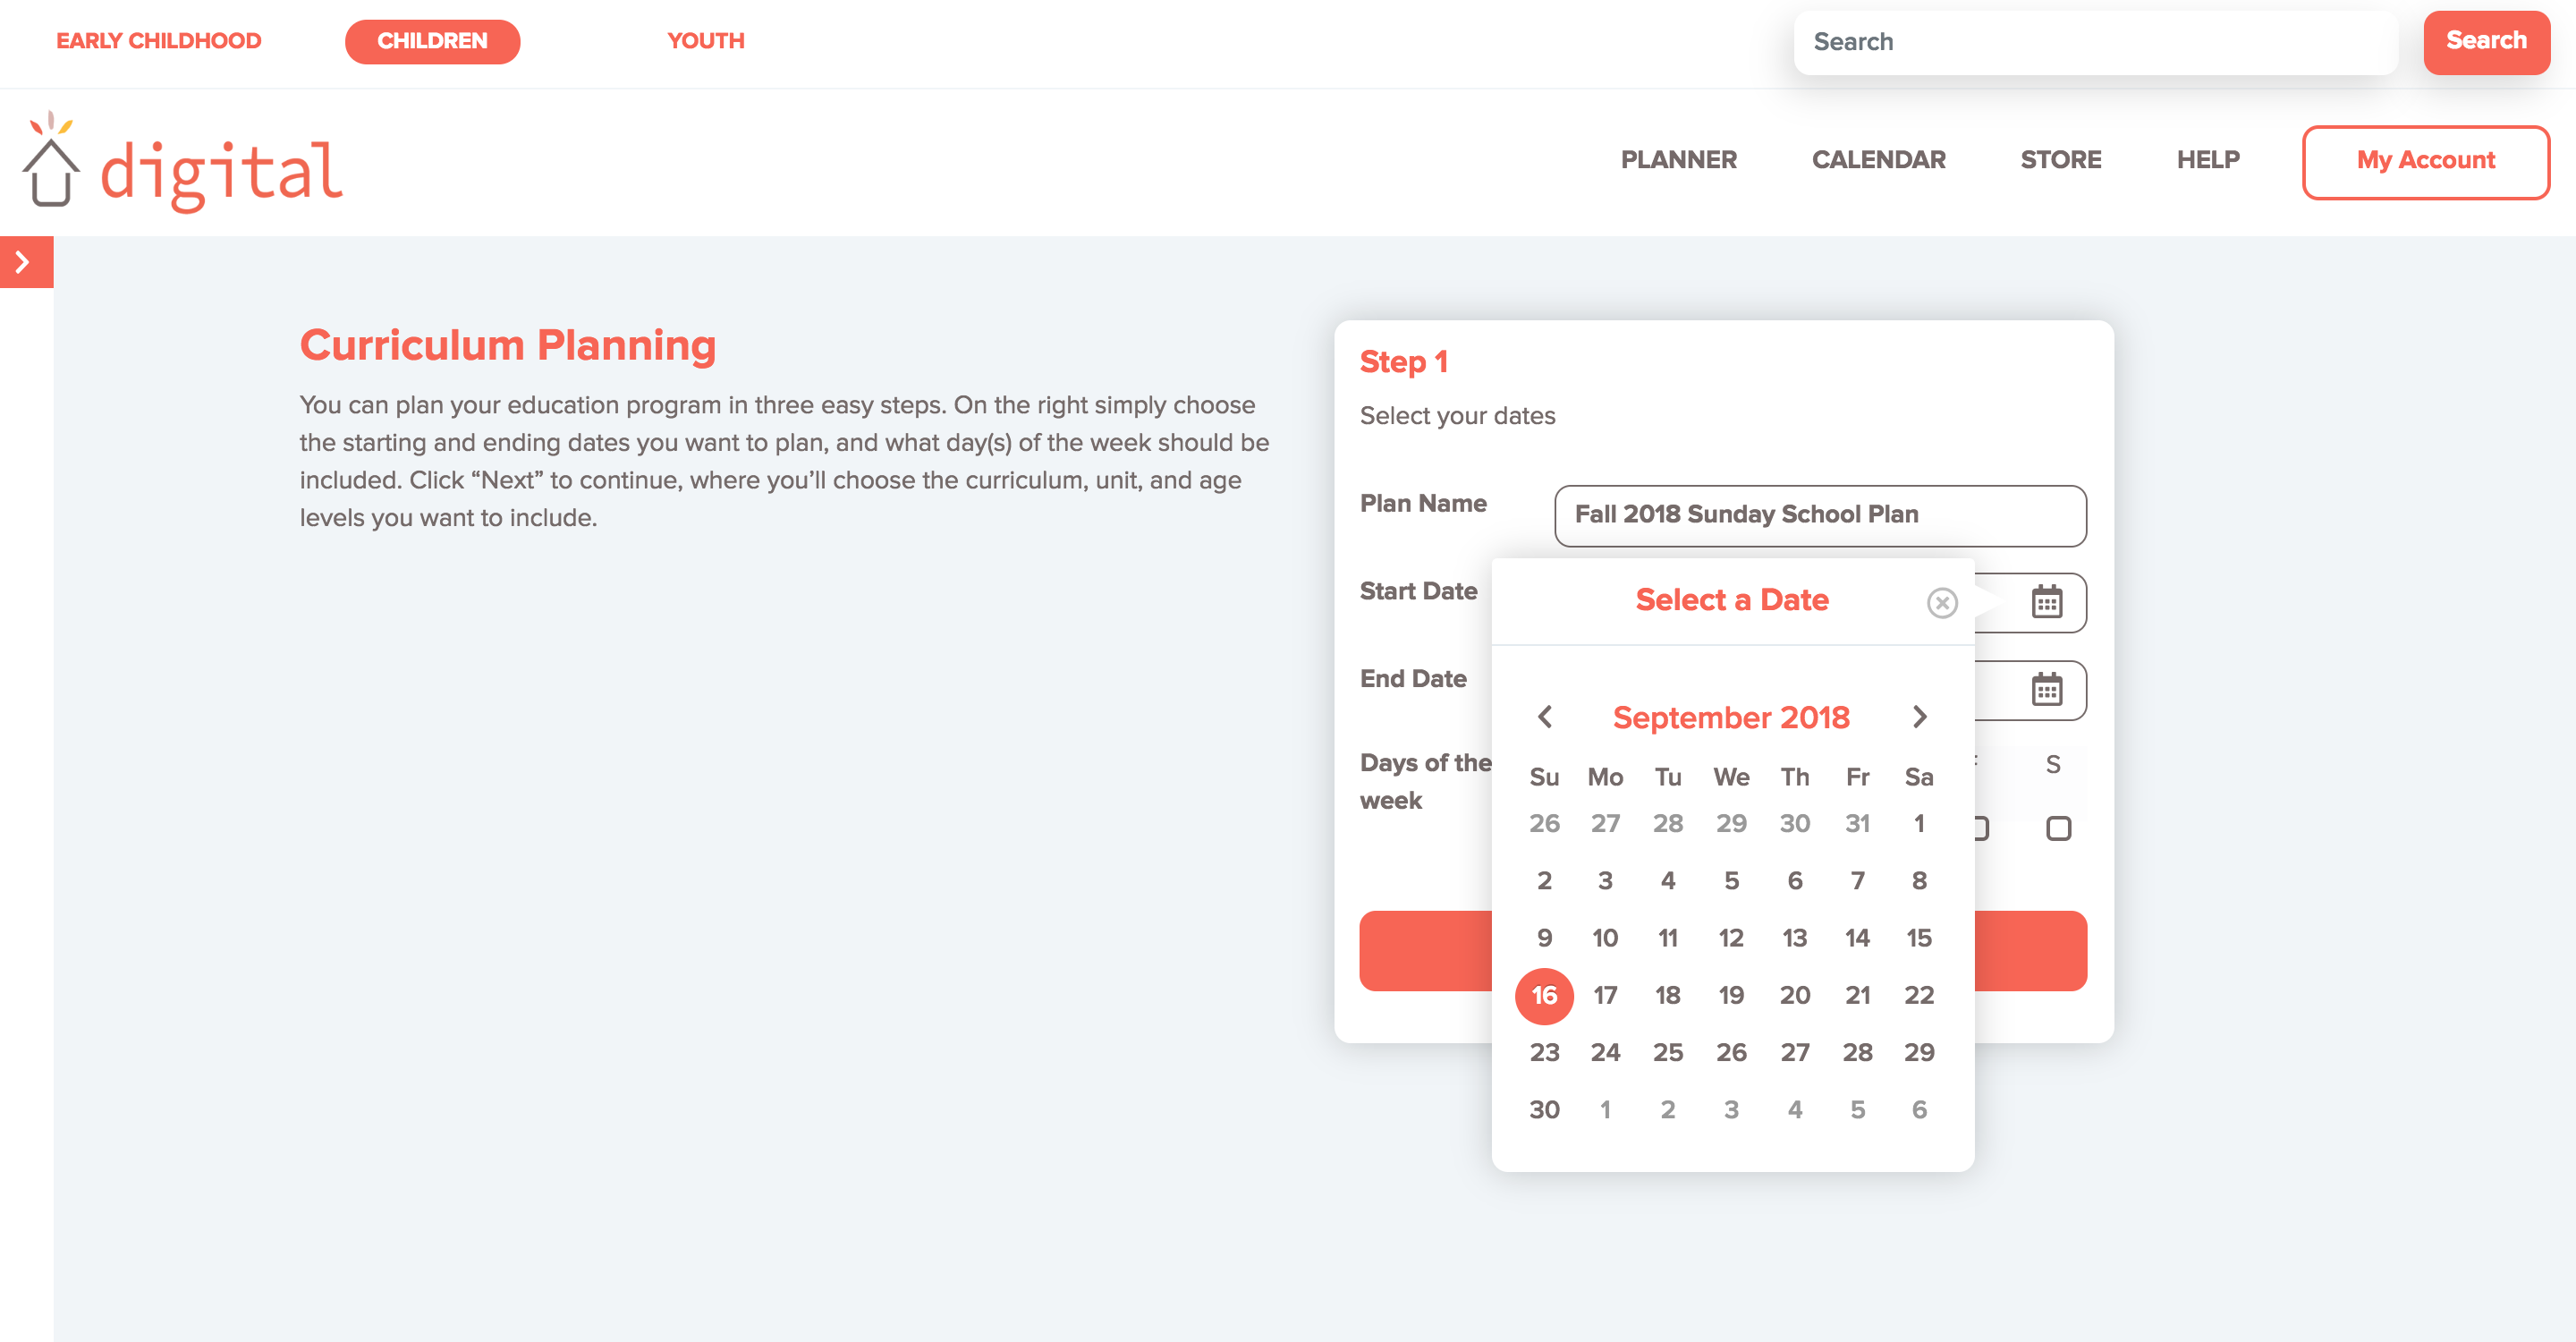 A sneak peek at the planning tool in Sparkhouse Digital | Sparkhouse Blog